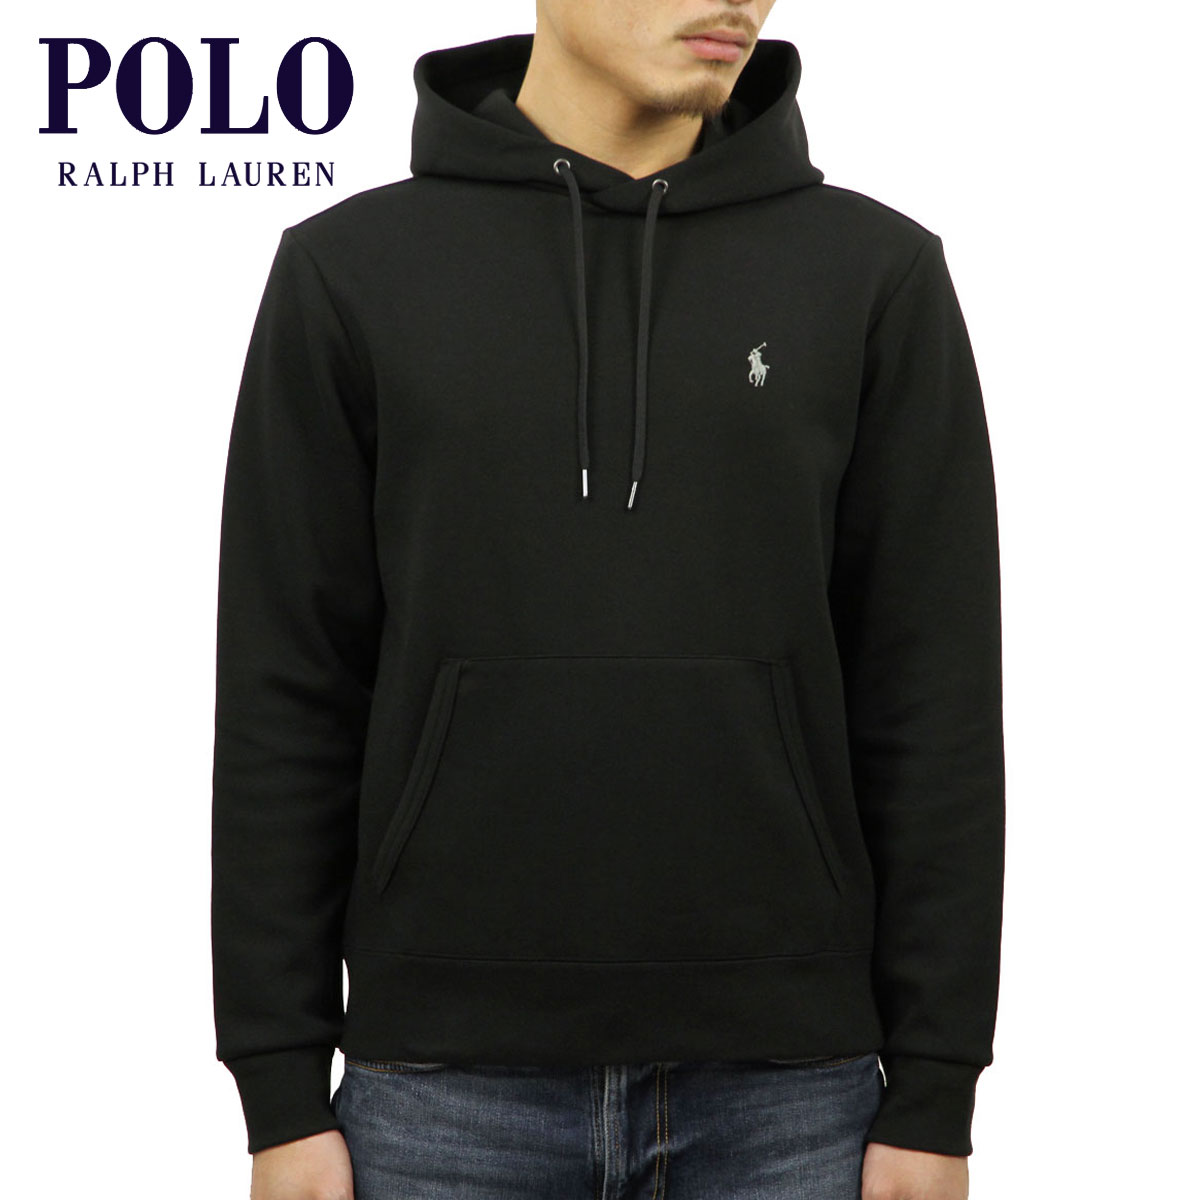 7d93c097f380 Polo Ralph Lauren POLO RALPH LAUREN regular article men pullover parka  DOUBLE-KNIT HOODIE